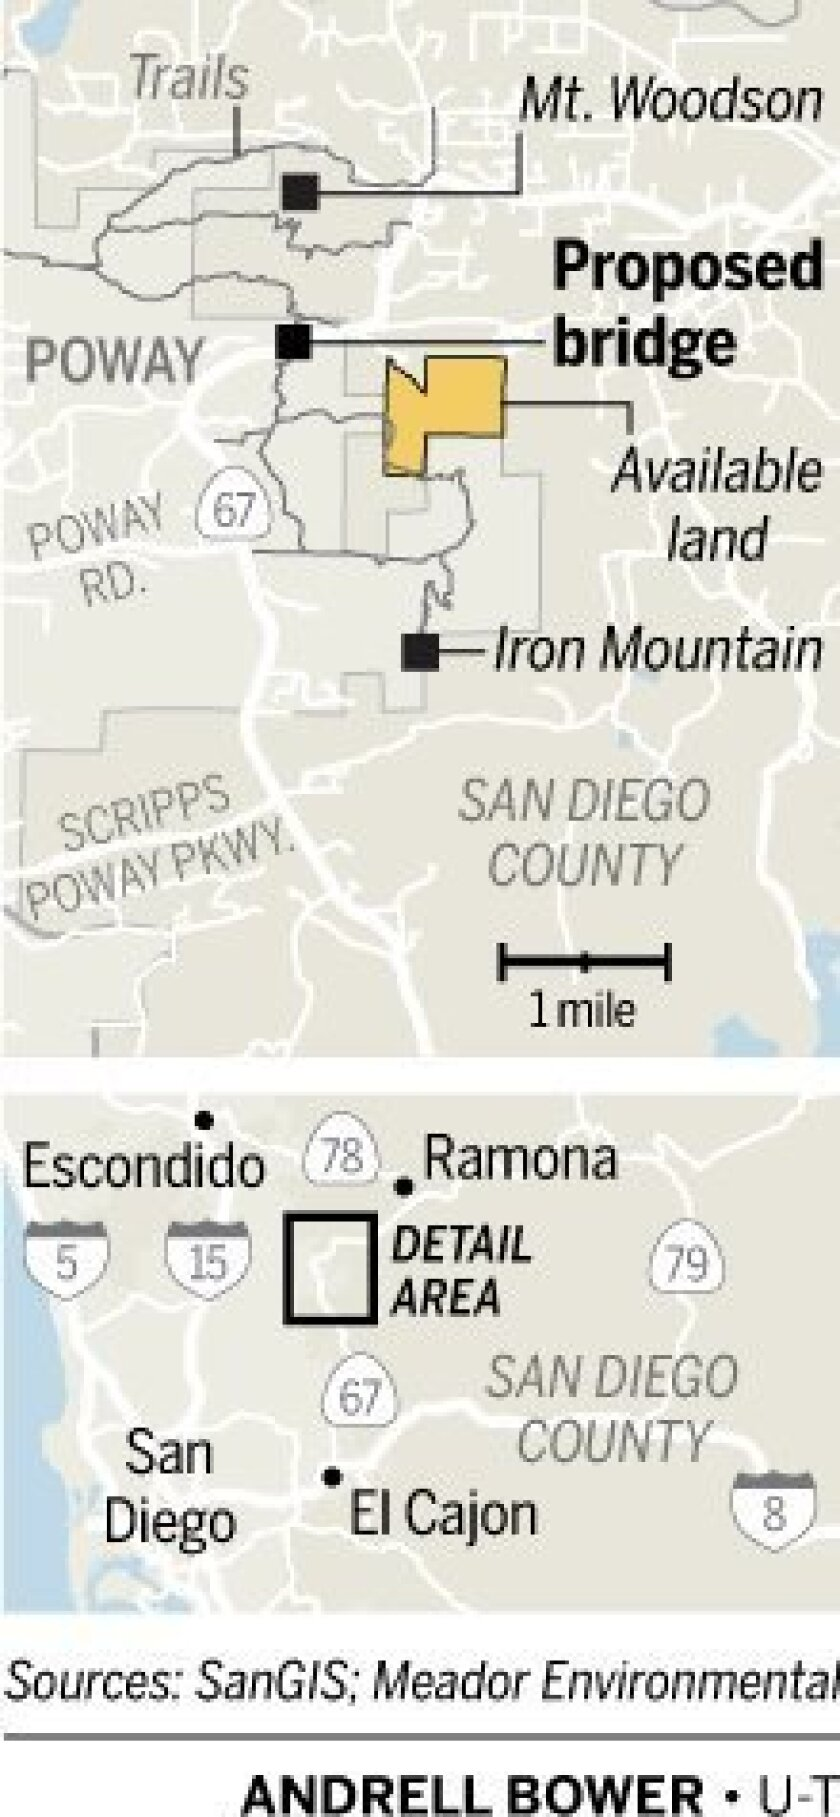 Hwy  67 bridge in Poway would connect county trails - The